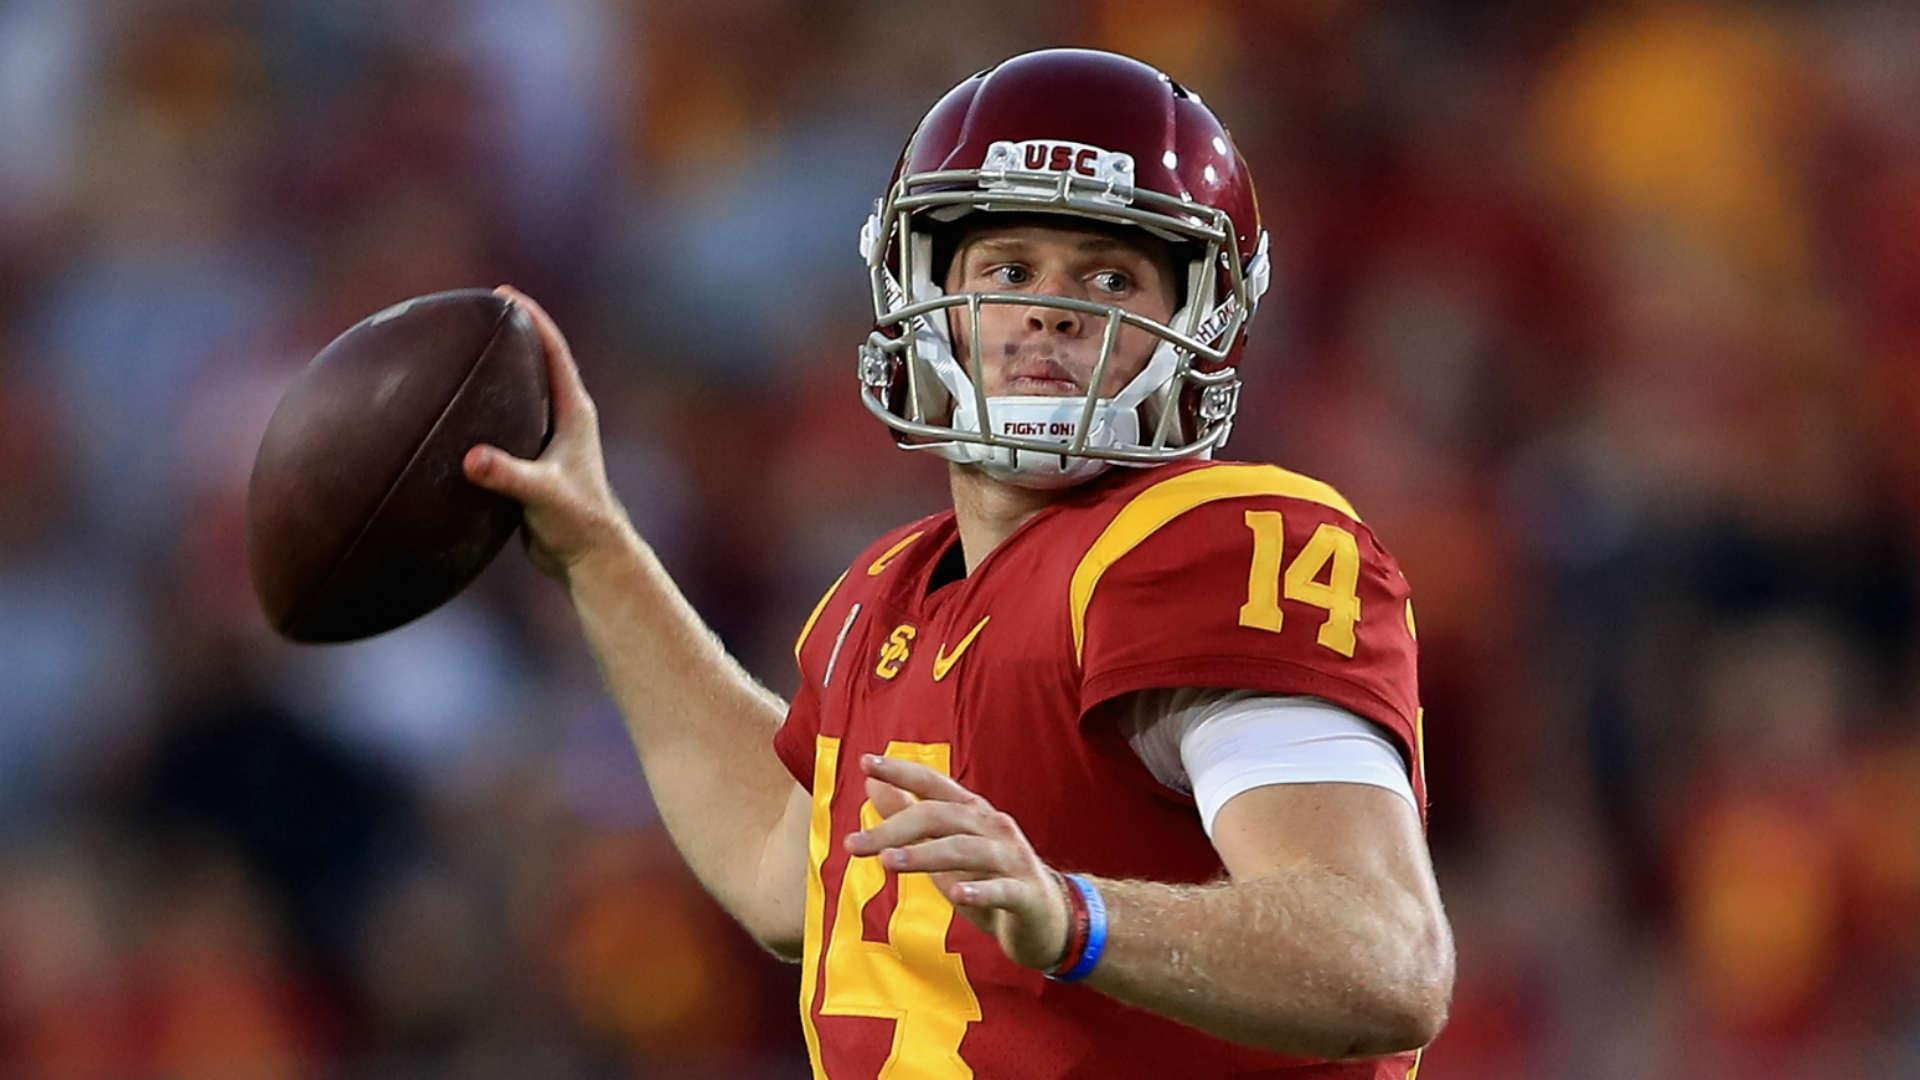 Usc Qb Sam Darnold Says He S Not Ducking The Browns In Nfl Draft